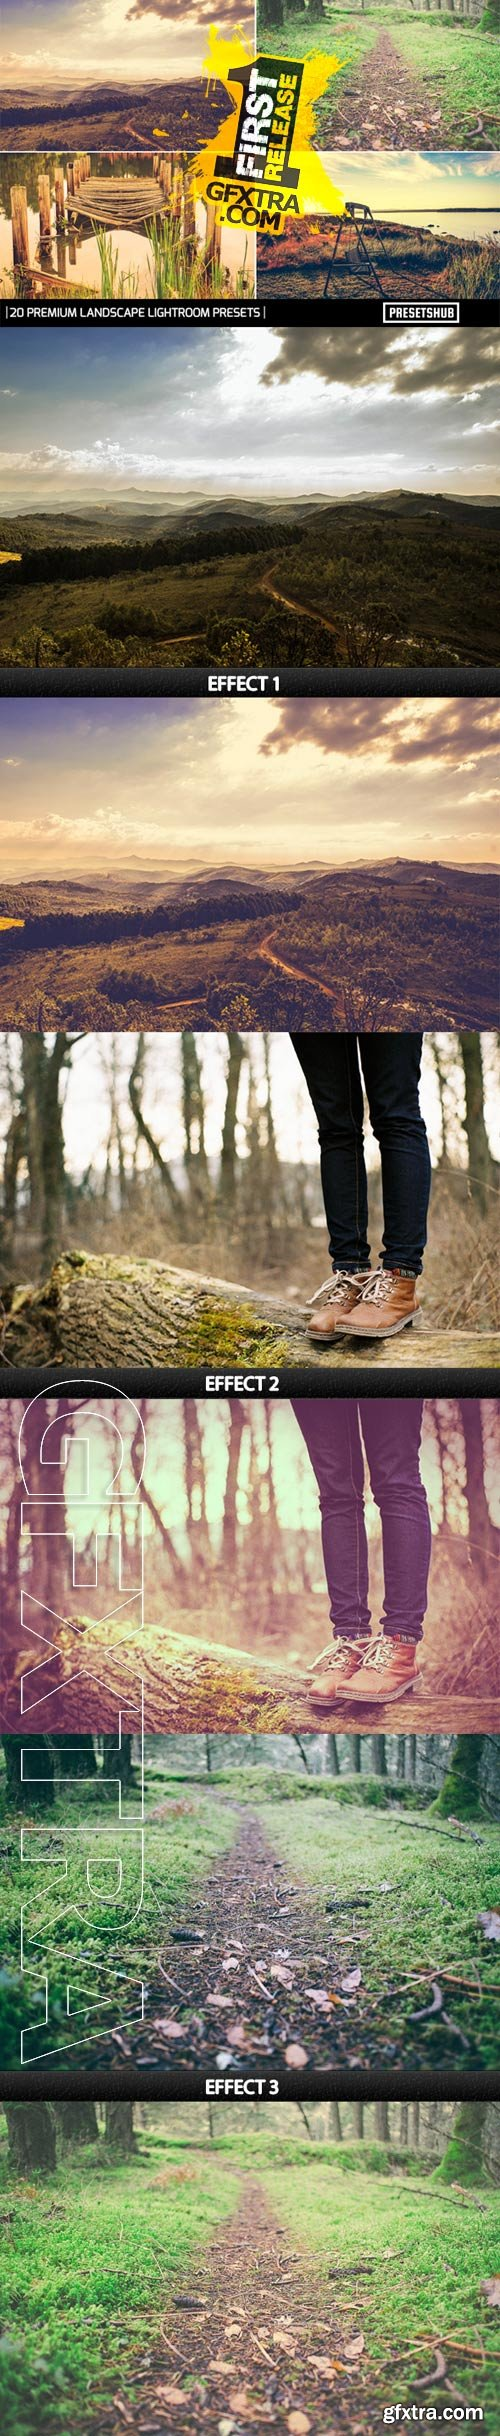 GraphicRiver - 20 Premium Landscape Effect V-1 Lightroom Presets 9475026